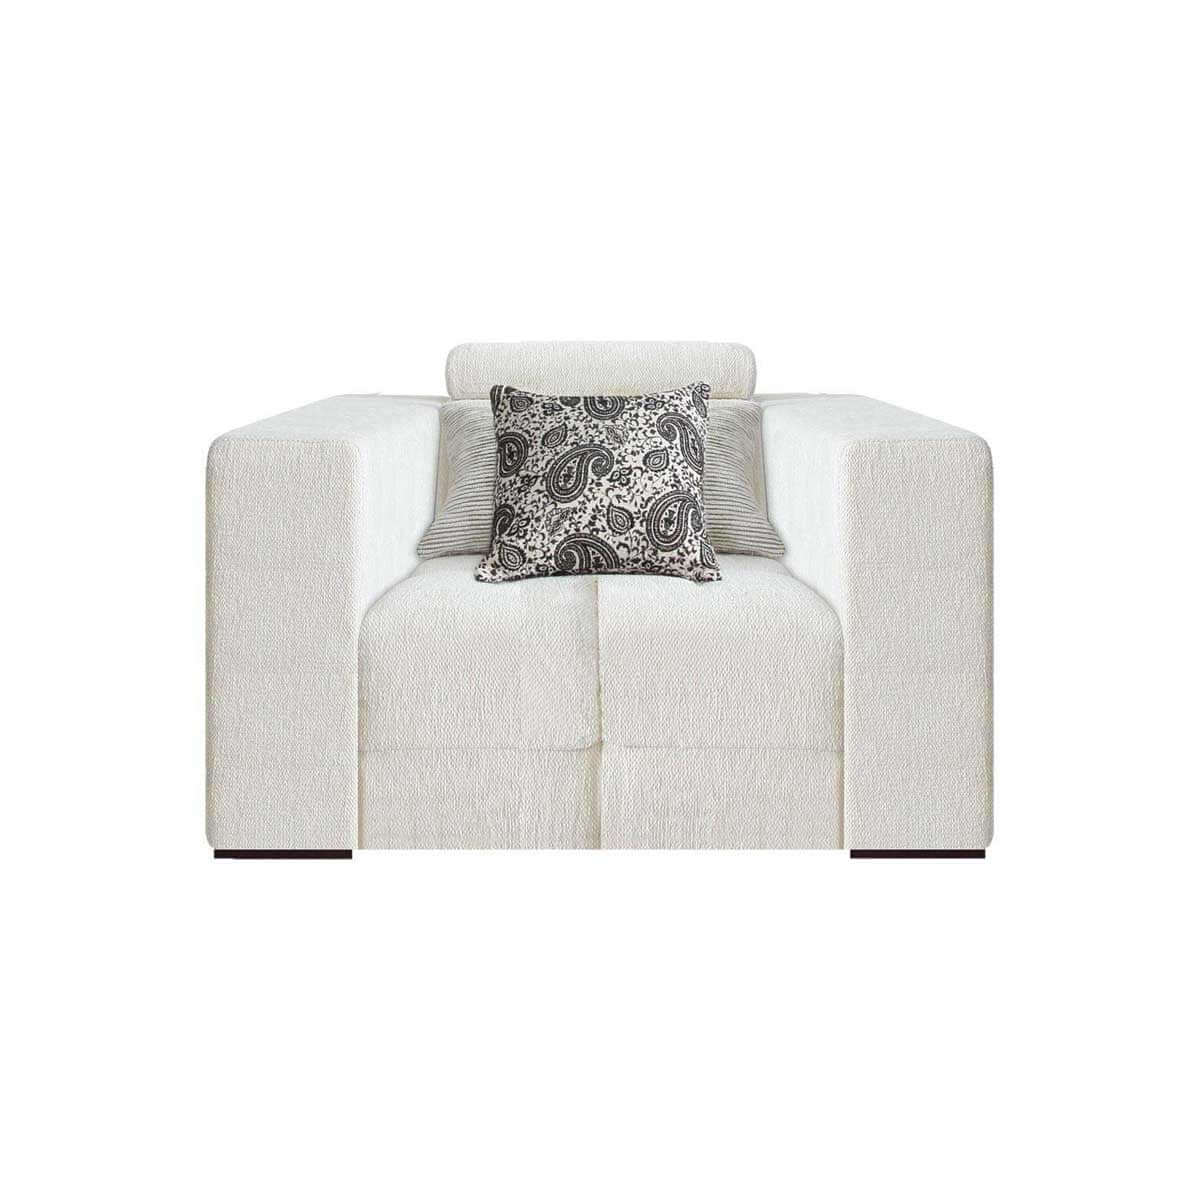 1 seat sofa with movable headrest